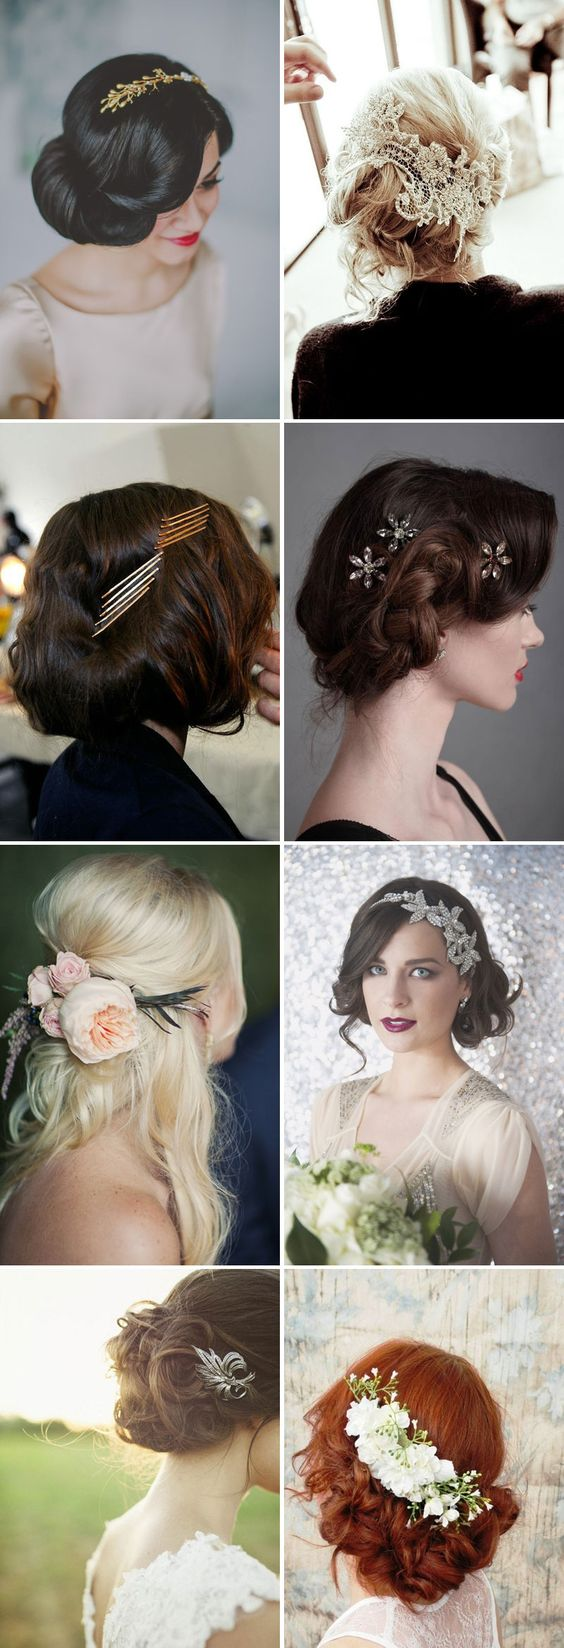 Like the scattered pins second row right and the two left images on the bottom two rows - the hairstyles too!